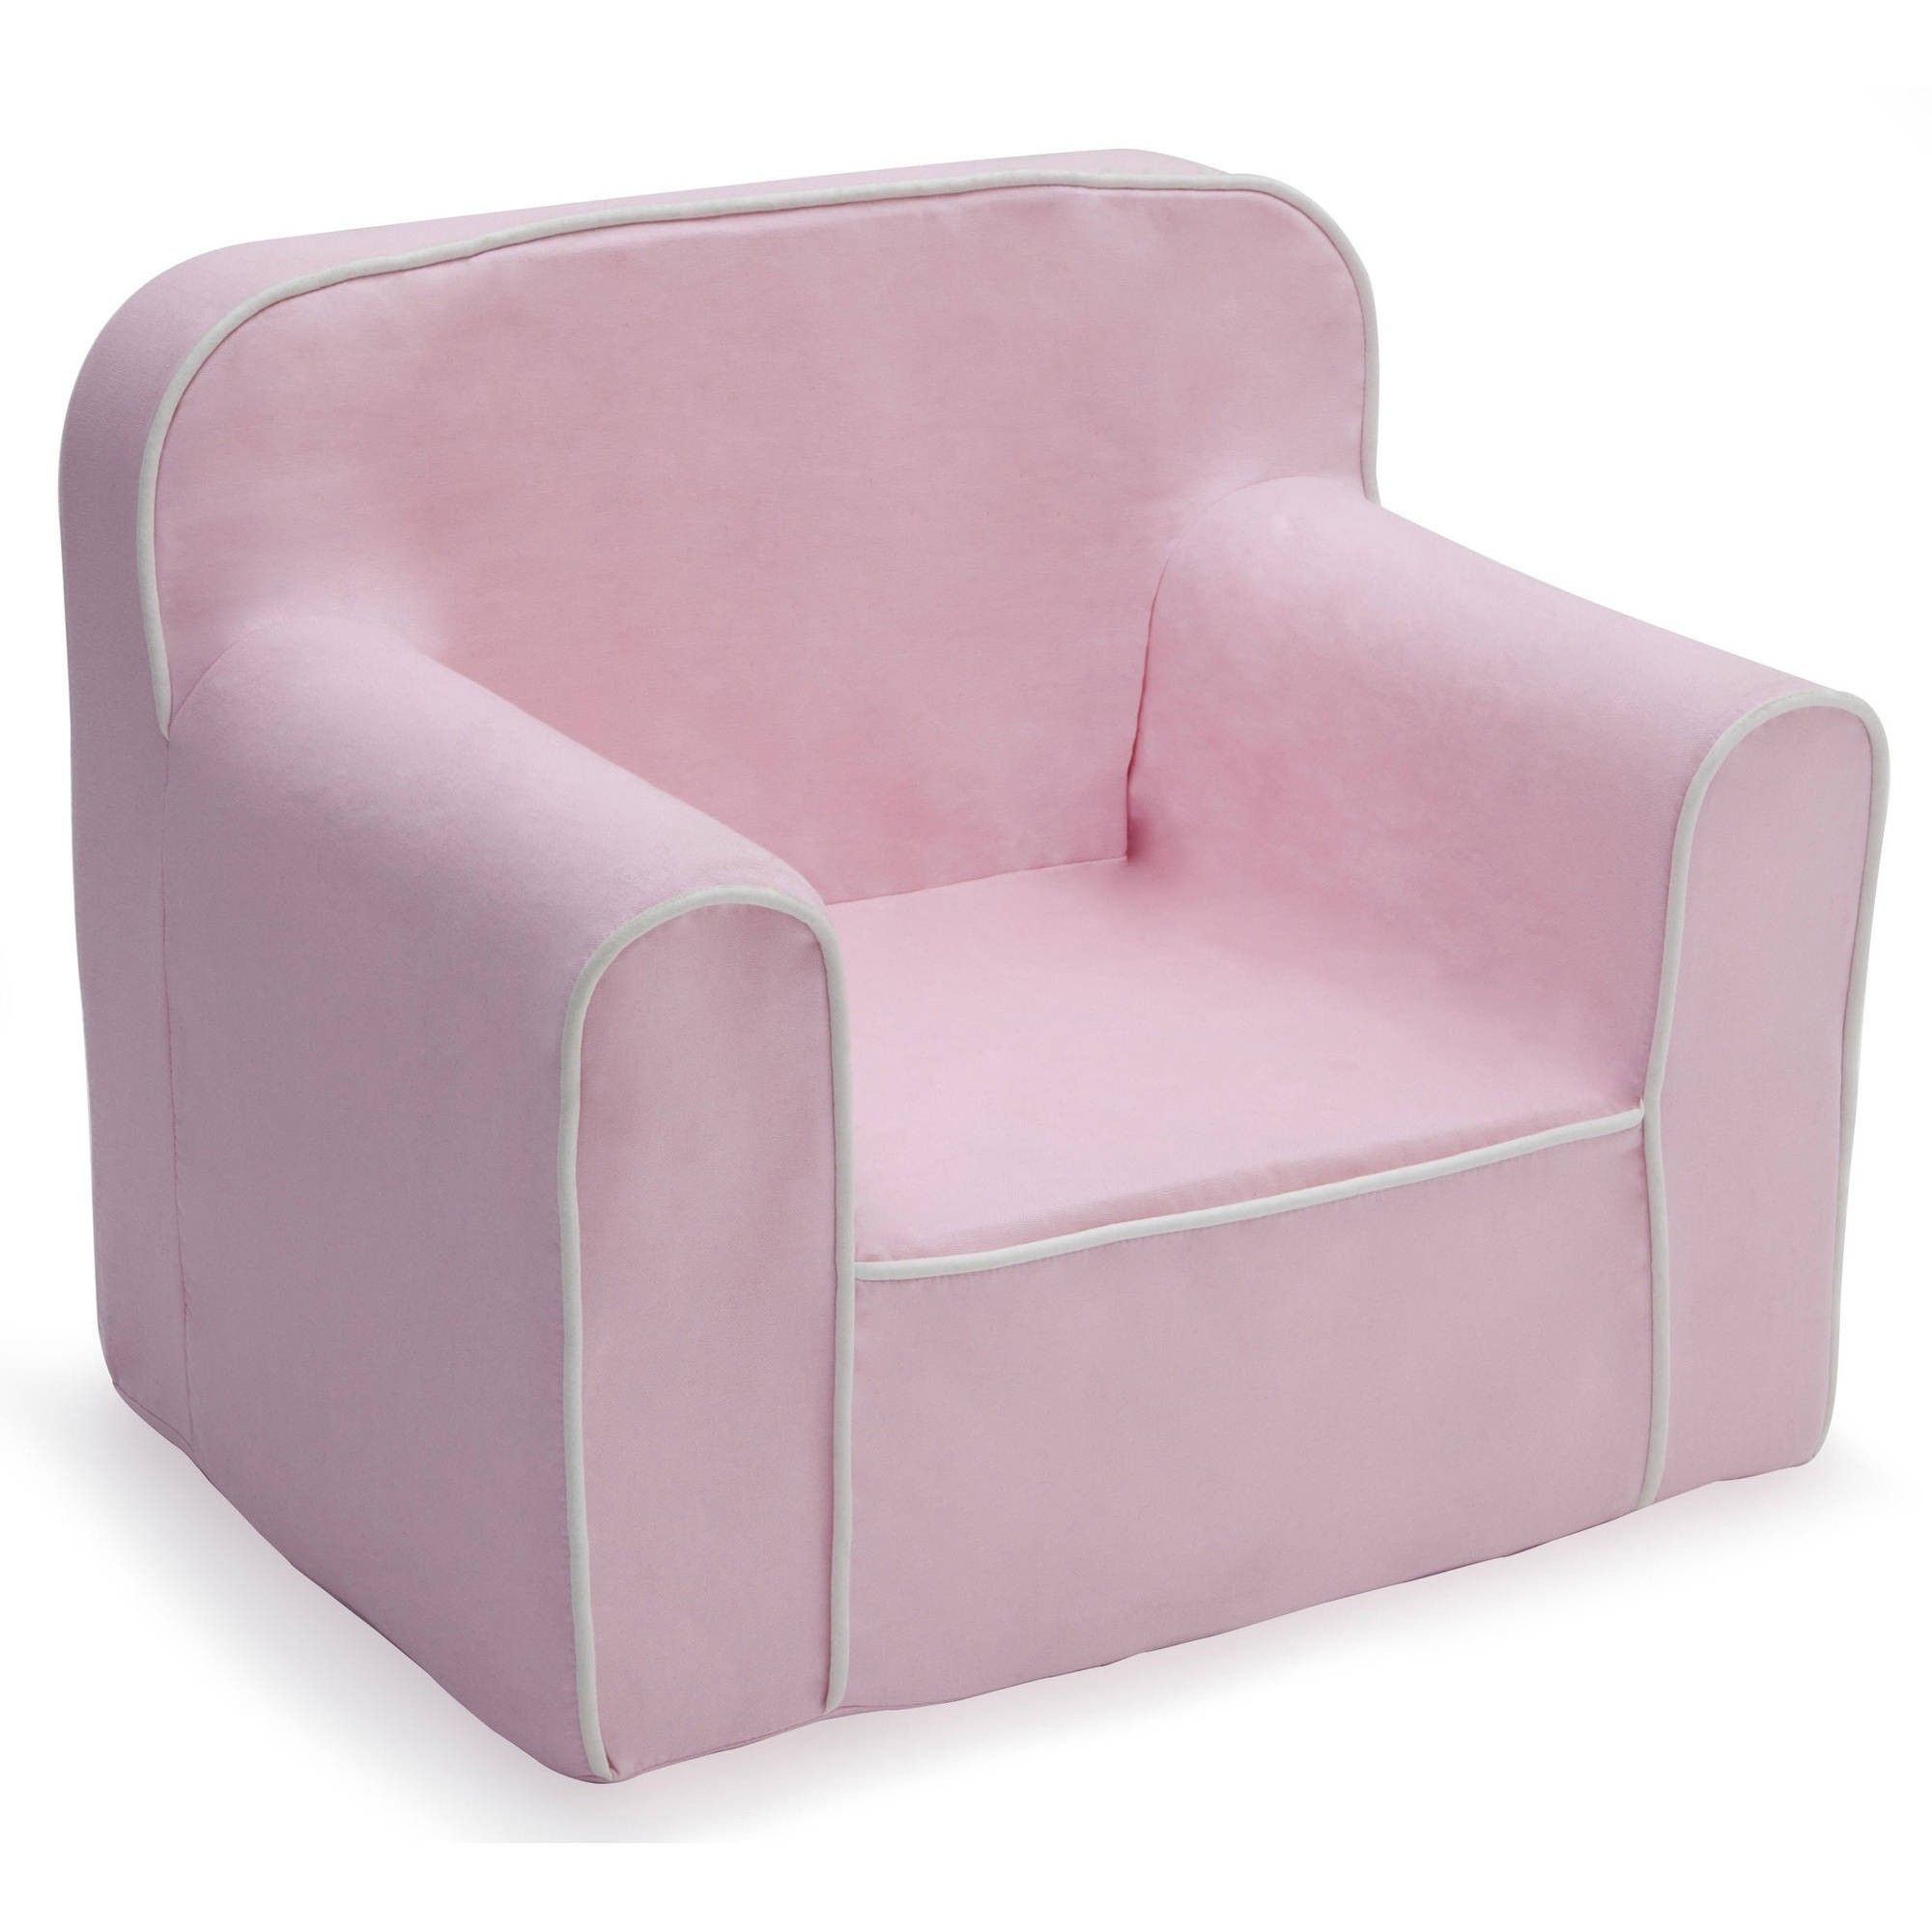 Soft Chairs For Toddlers Louis Arm Chair Best Of Little Lounging